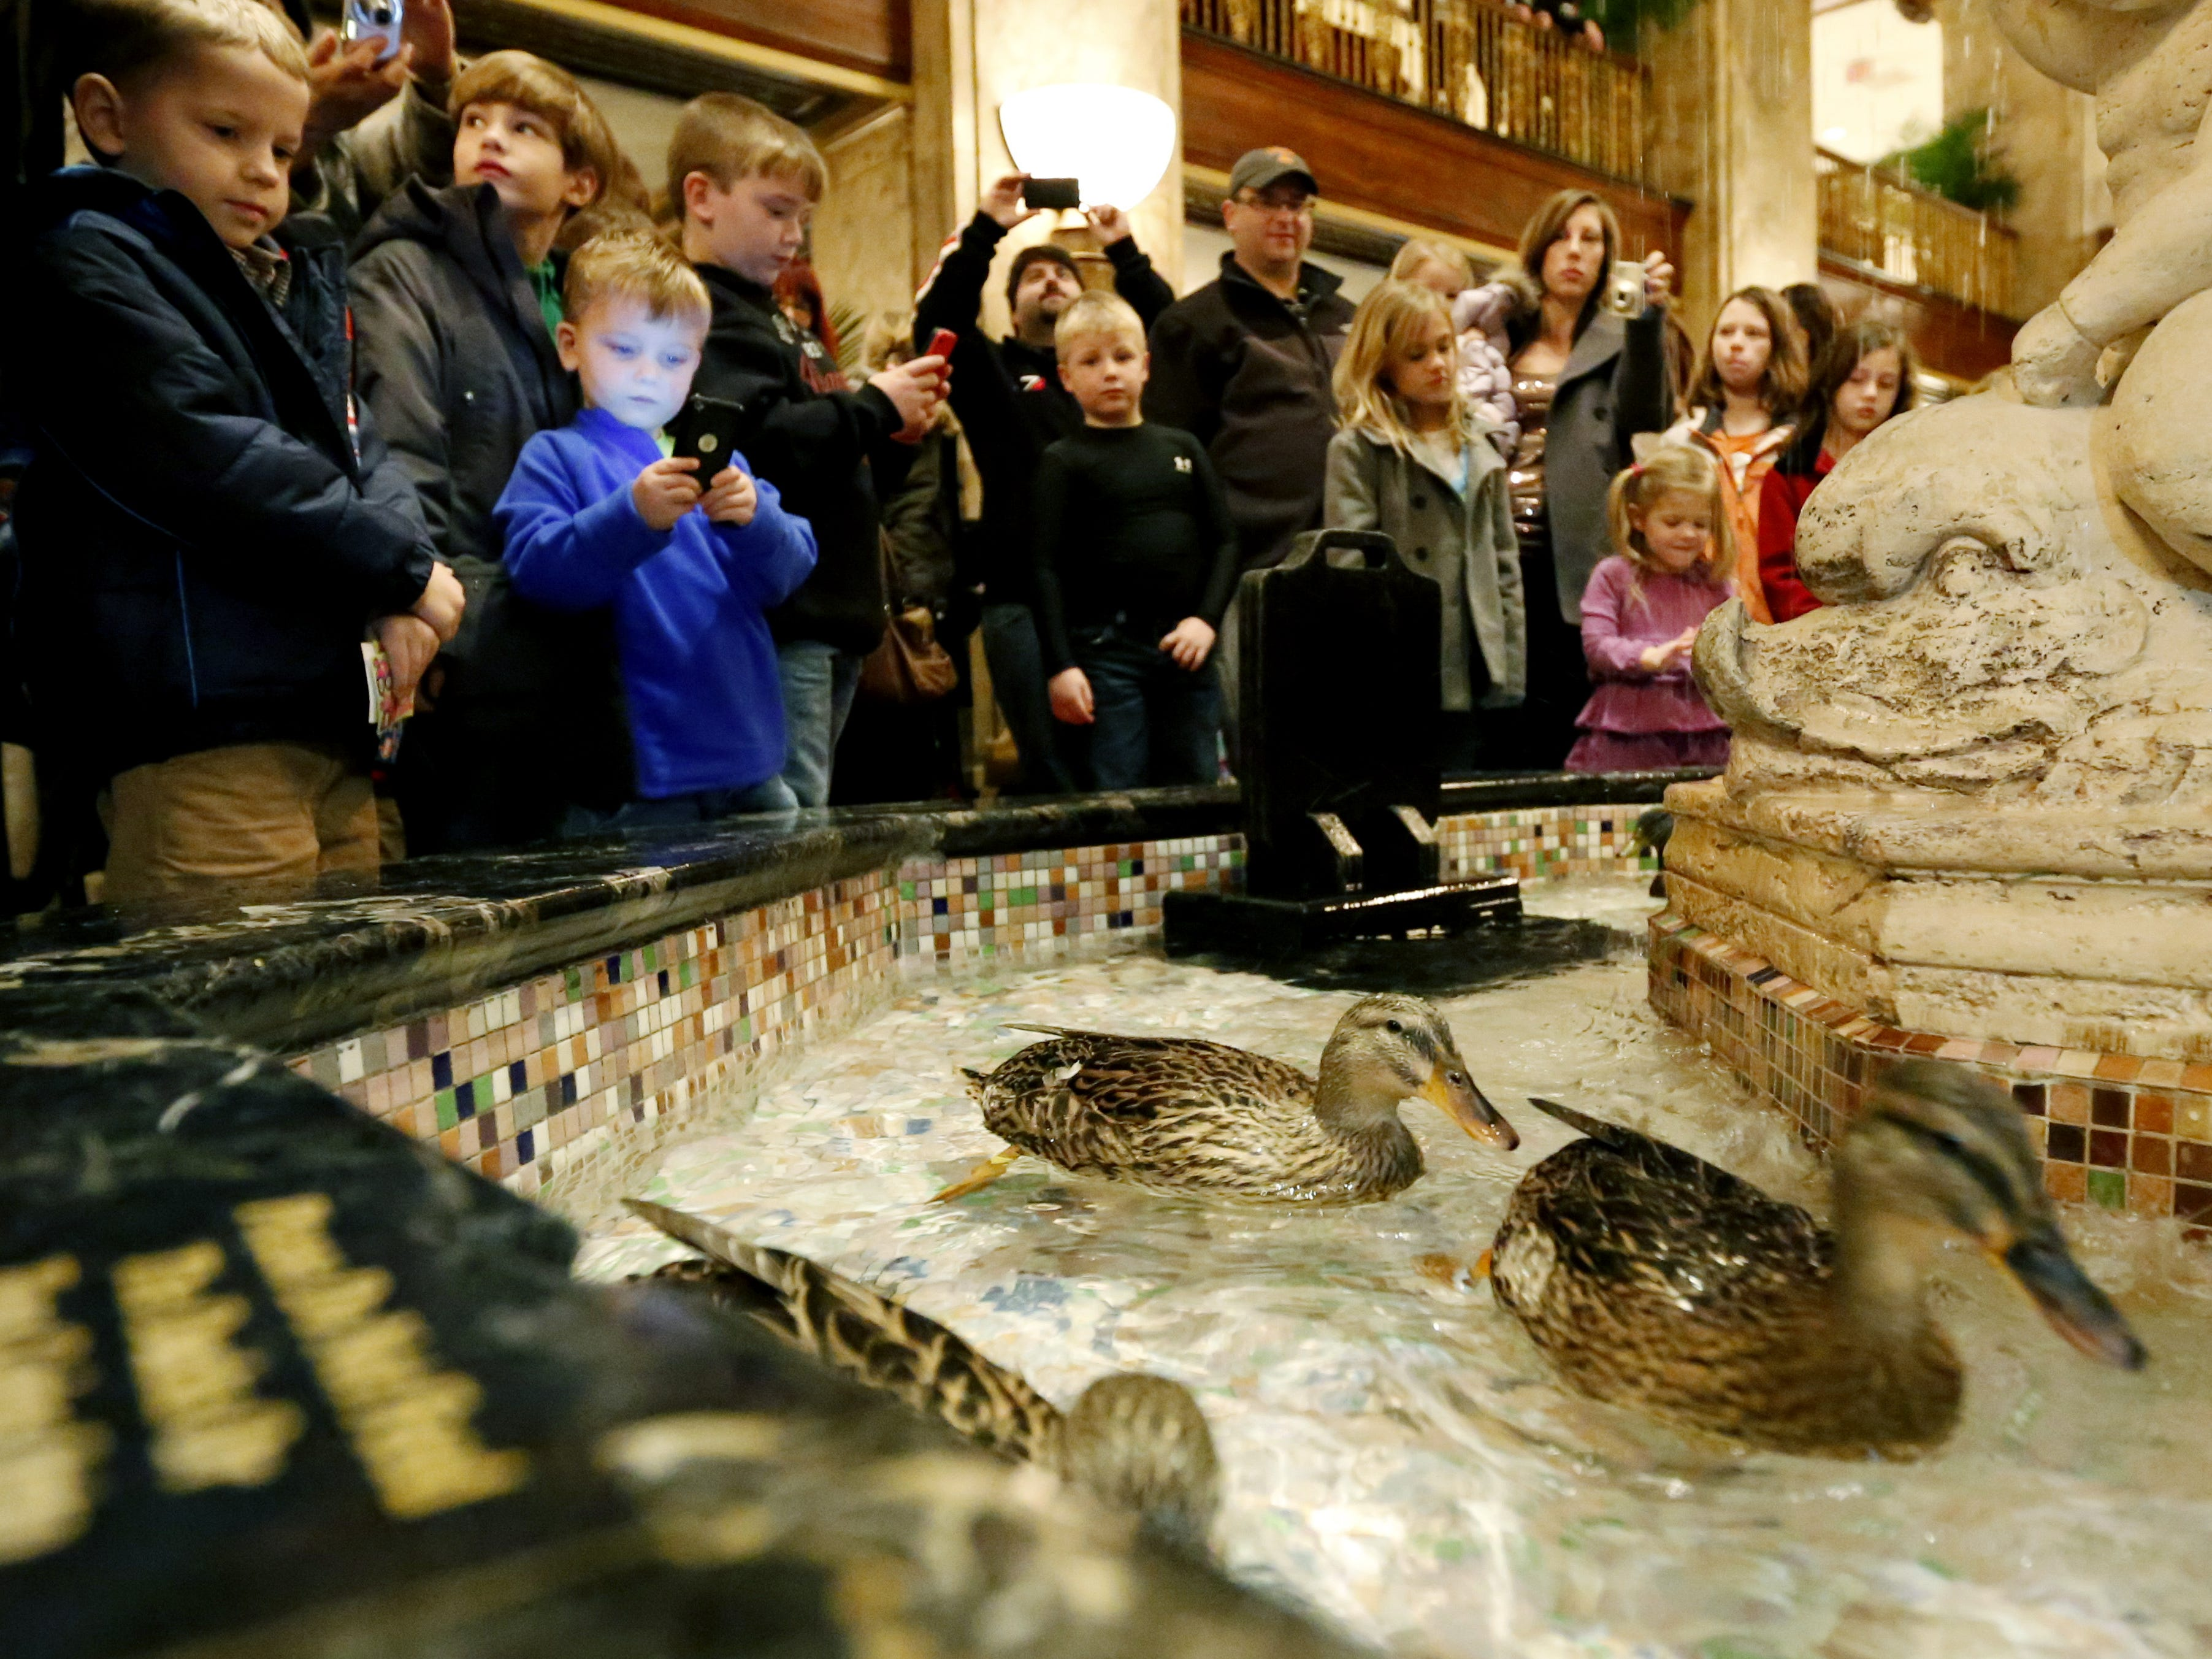 """Tourists watch on as ducks swim in a fountain in the lobby of the Peabody Hotel in Memphis on Dec. 28, 2012. The ducks take a """"Duck March"""" each day from where they live in the penthouse year-round. Then come down in an elevator, scamper across a red carpet and jump into the lobby fountain."""